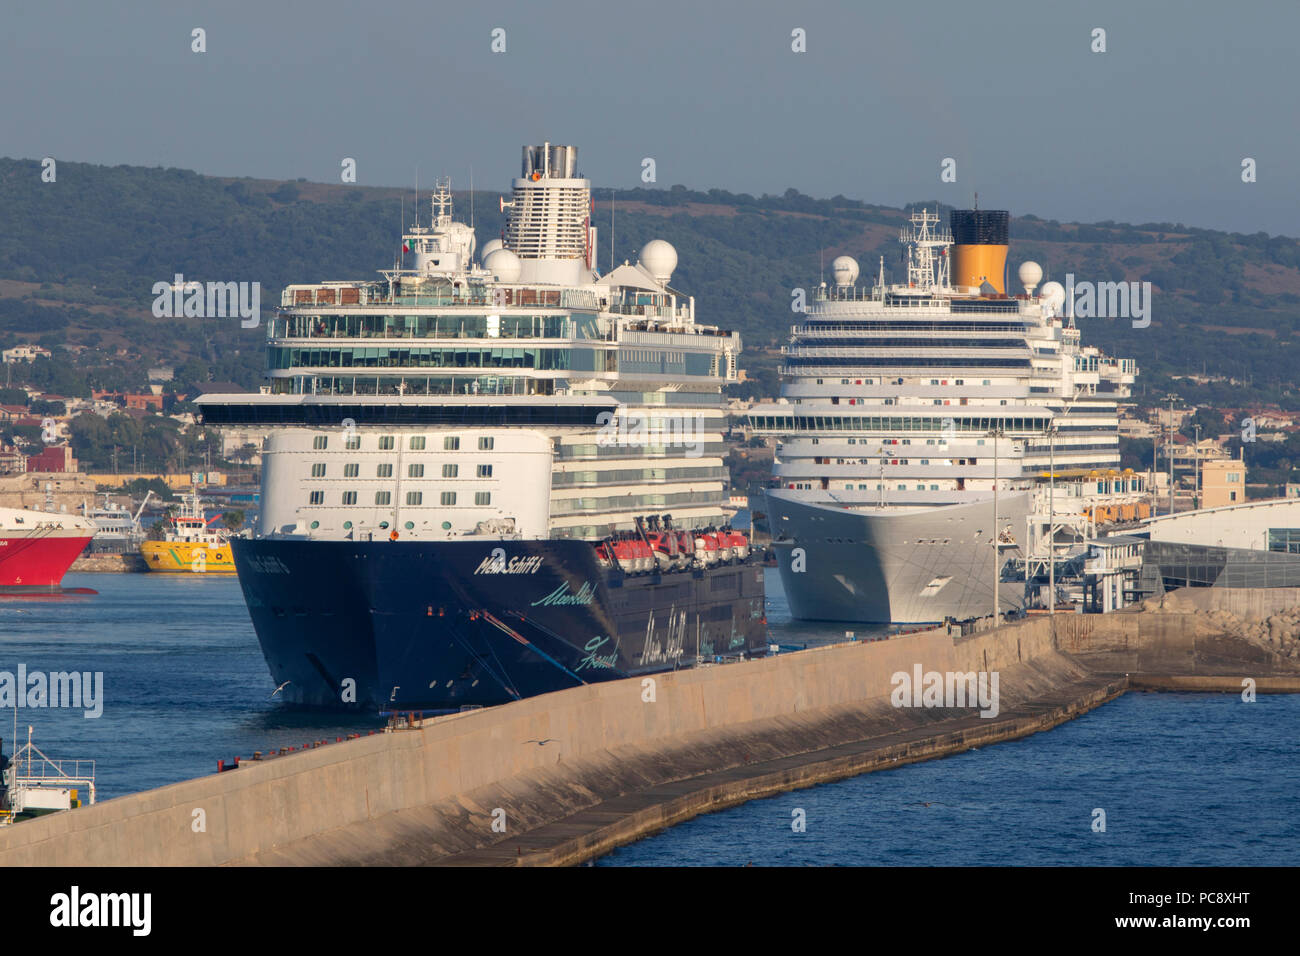 Mein Schiff 6 cruise ship owned by TUI Cruises and Costa Diadema both seen at Civitavecchia in Italy - Stock Image